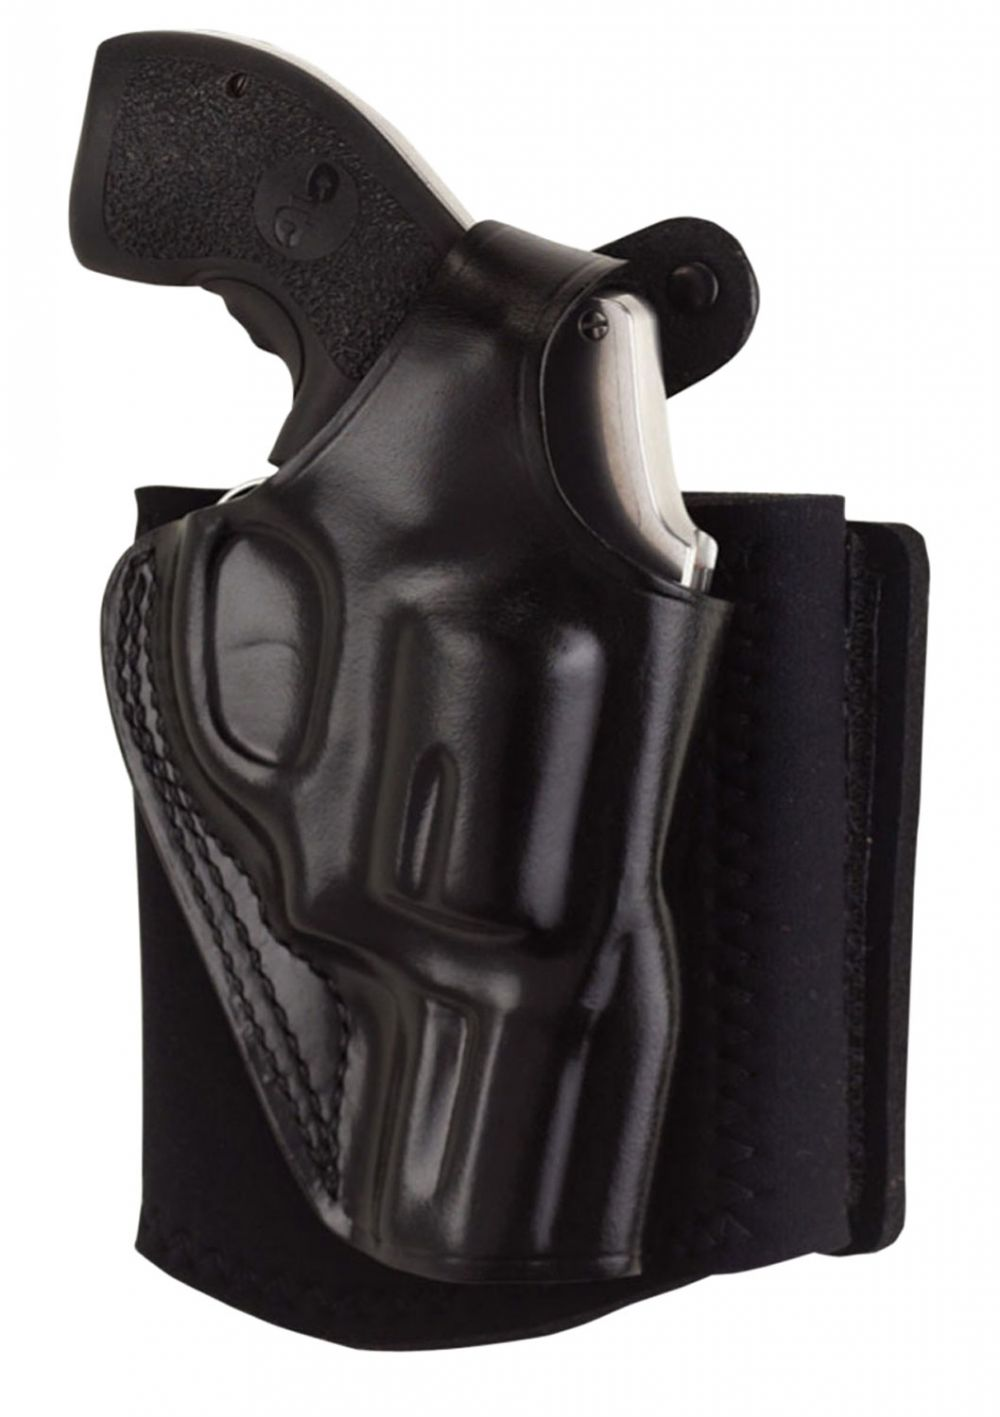 GALCO ANKLE GLOVE HOLSTE SIG P938 KIMBER MICRO 9